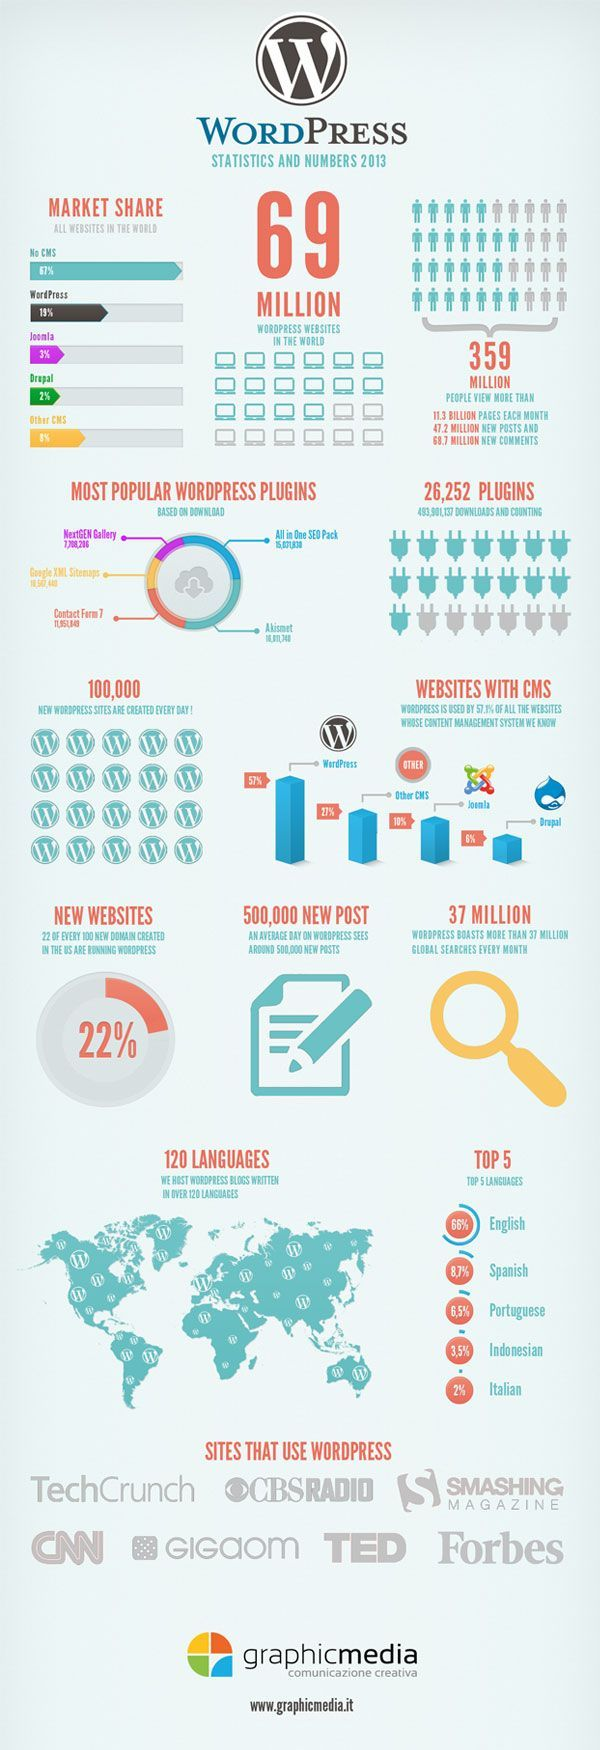 #WordPress Statistics and Numbers in 2013